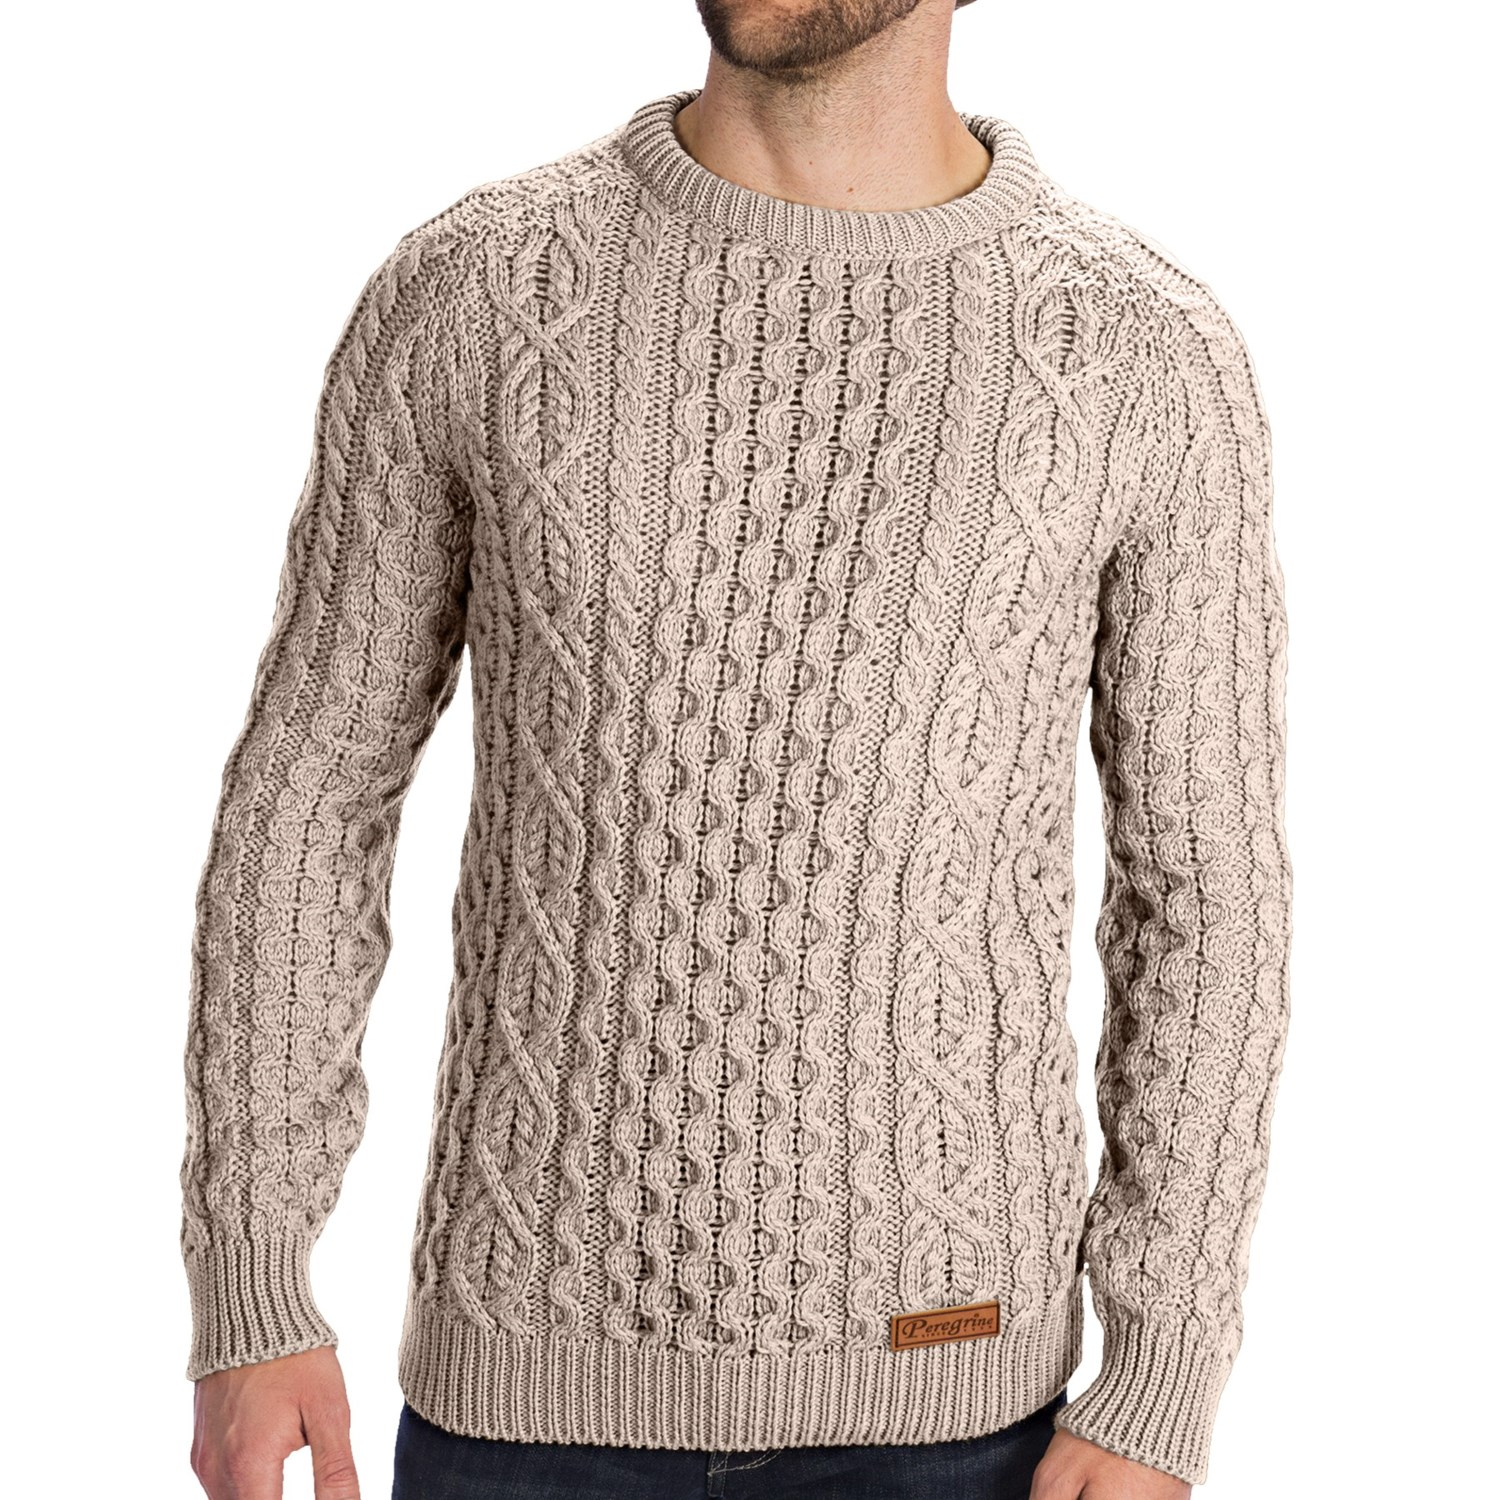 how to clean wool sweater at home